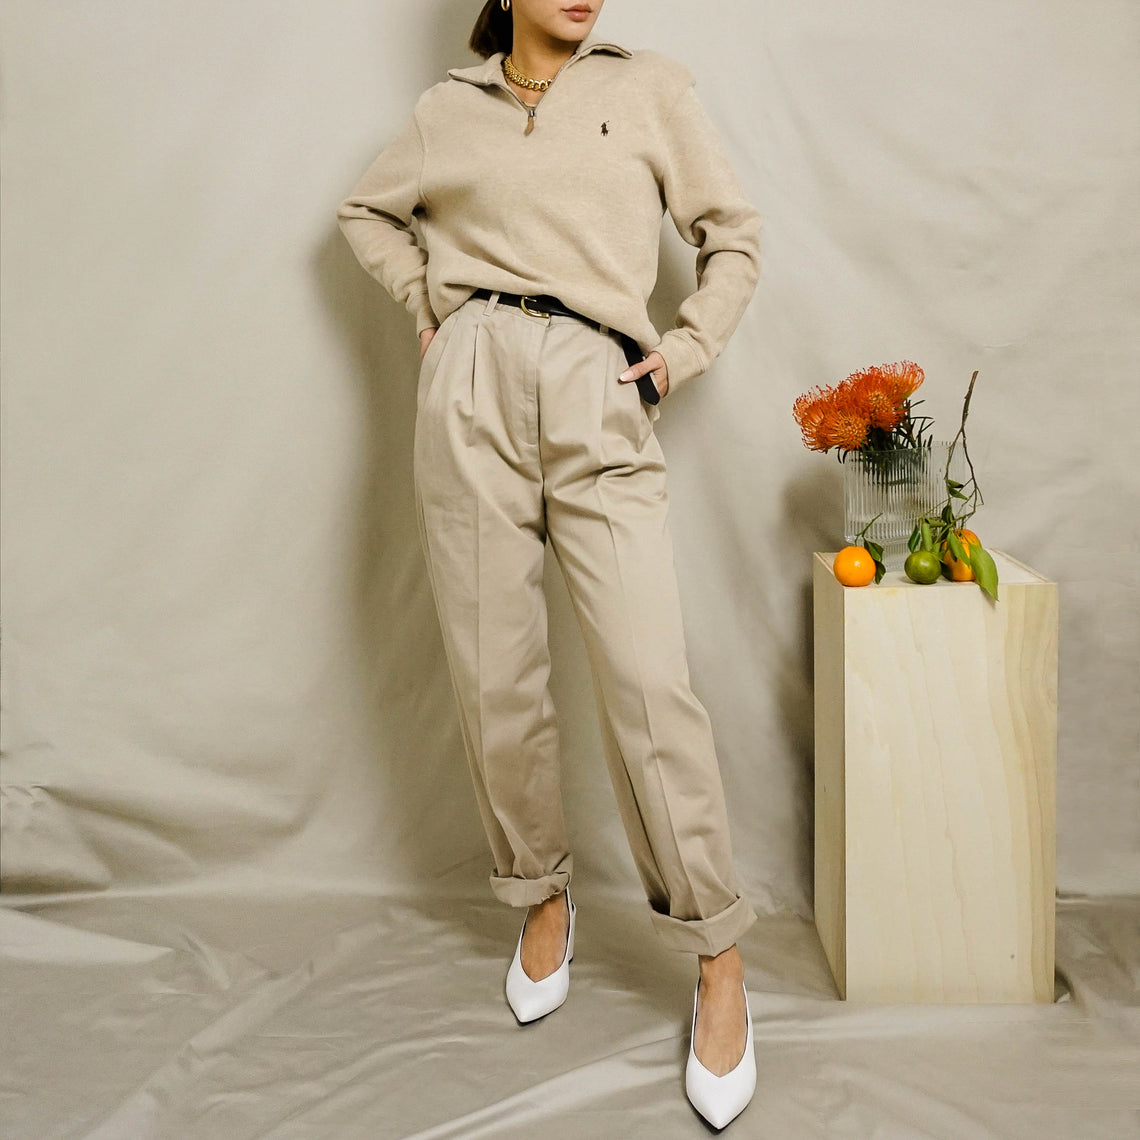 1990's LAUREN RALPH LAUREN PLEATED CHINOS | KHAKI | US 10